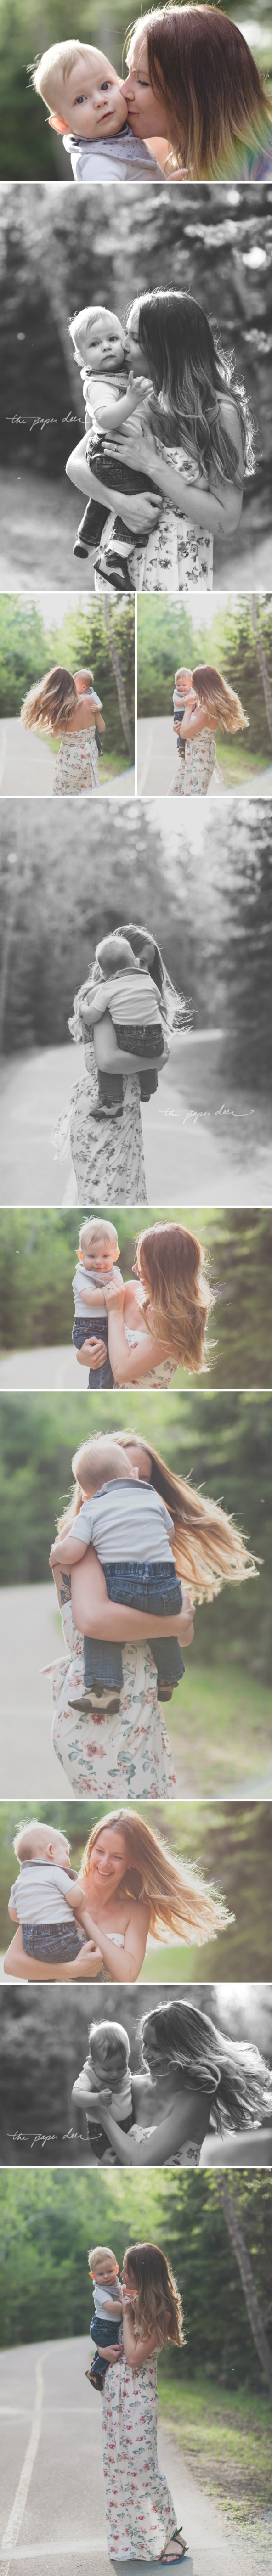 family lifestyle photography | ©The Paper Deer Photography | paperdeerphoto.com